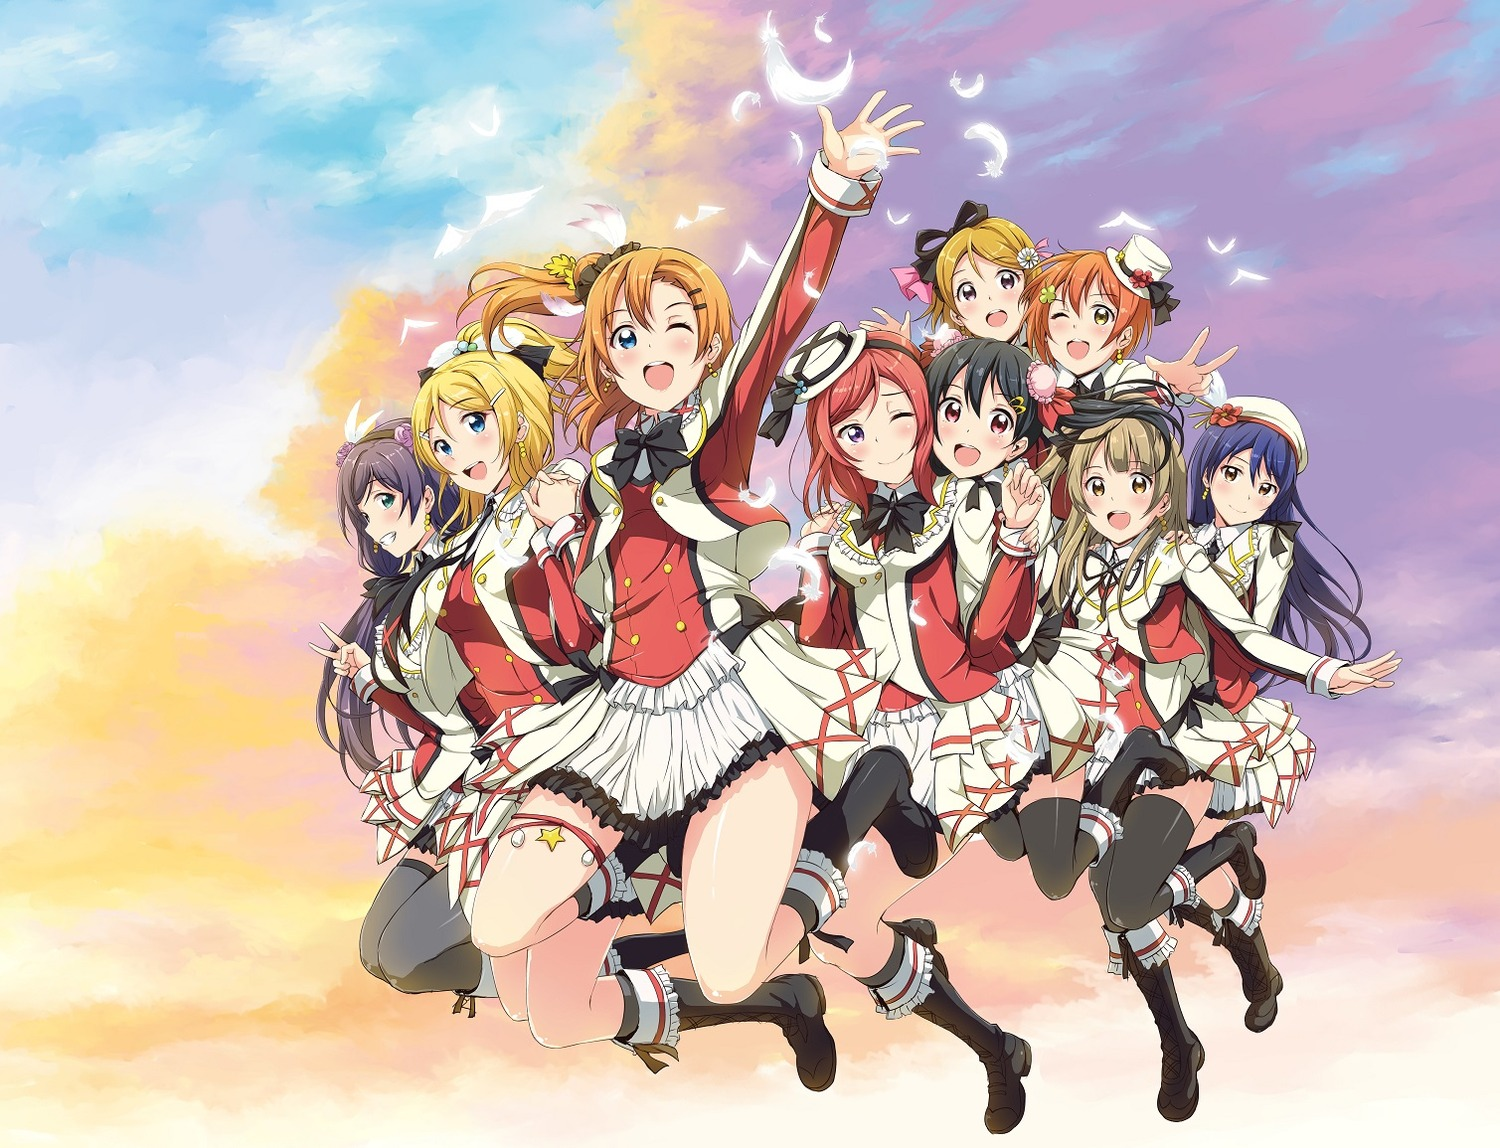 Love Images Live Wallpaper : Love Live! Wallpaper 27 BuyninJapan BLOG